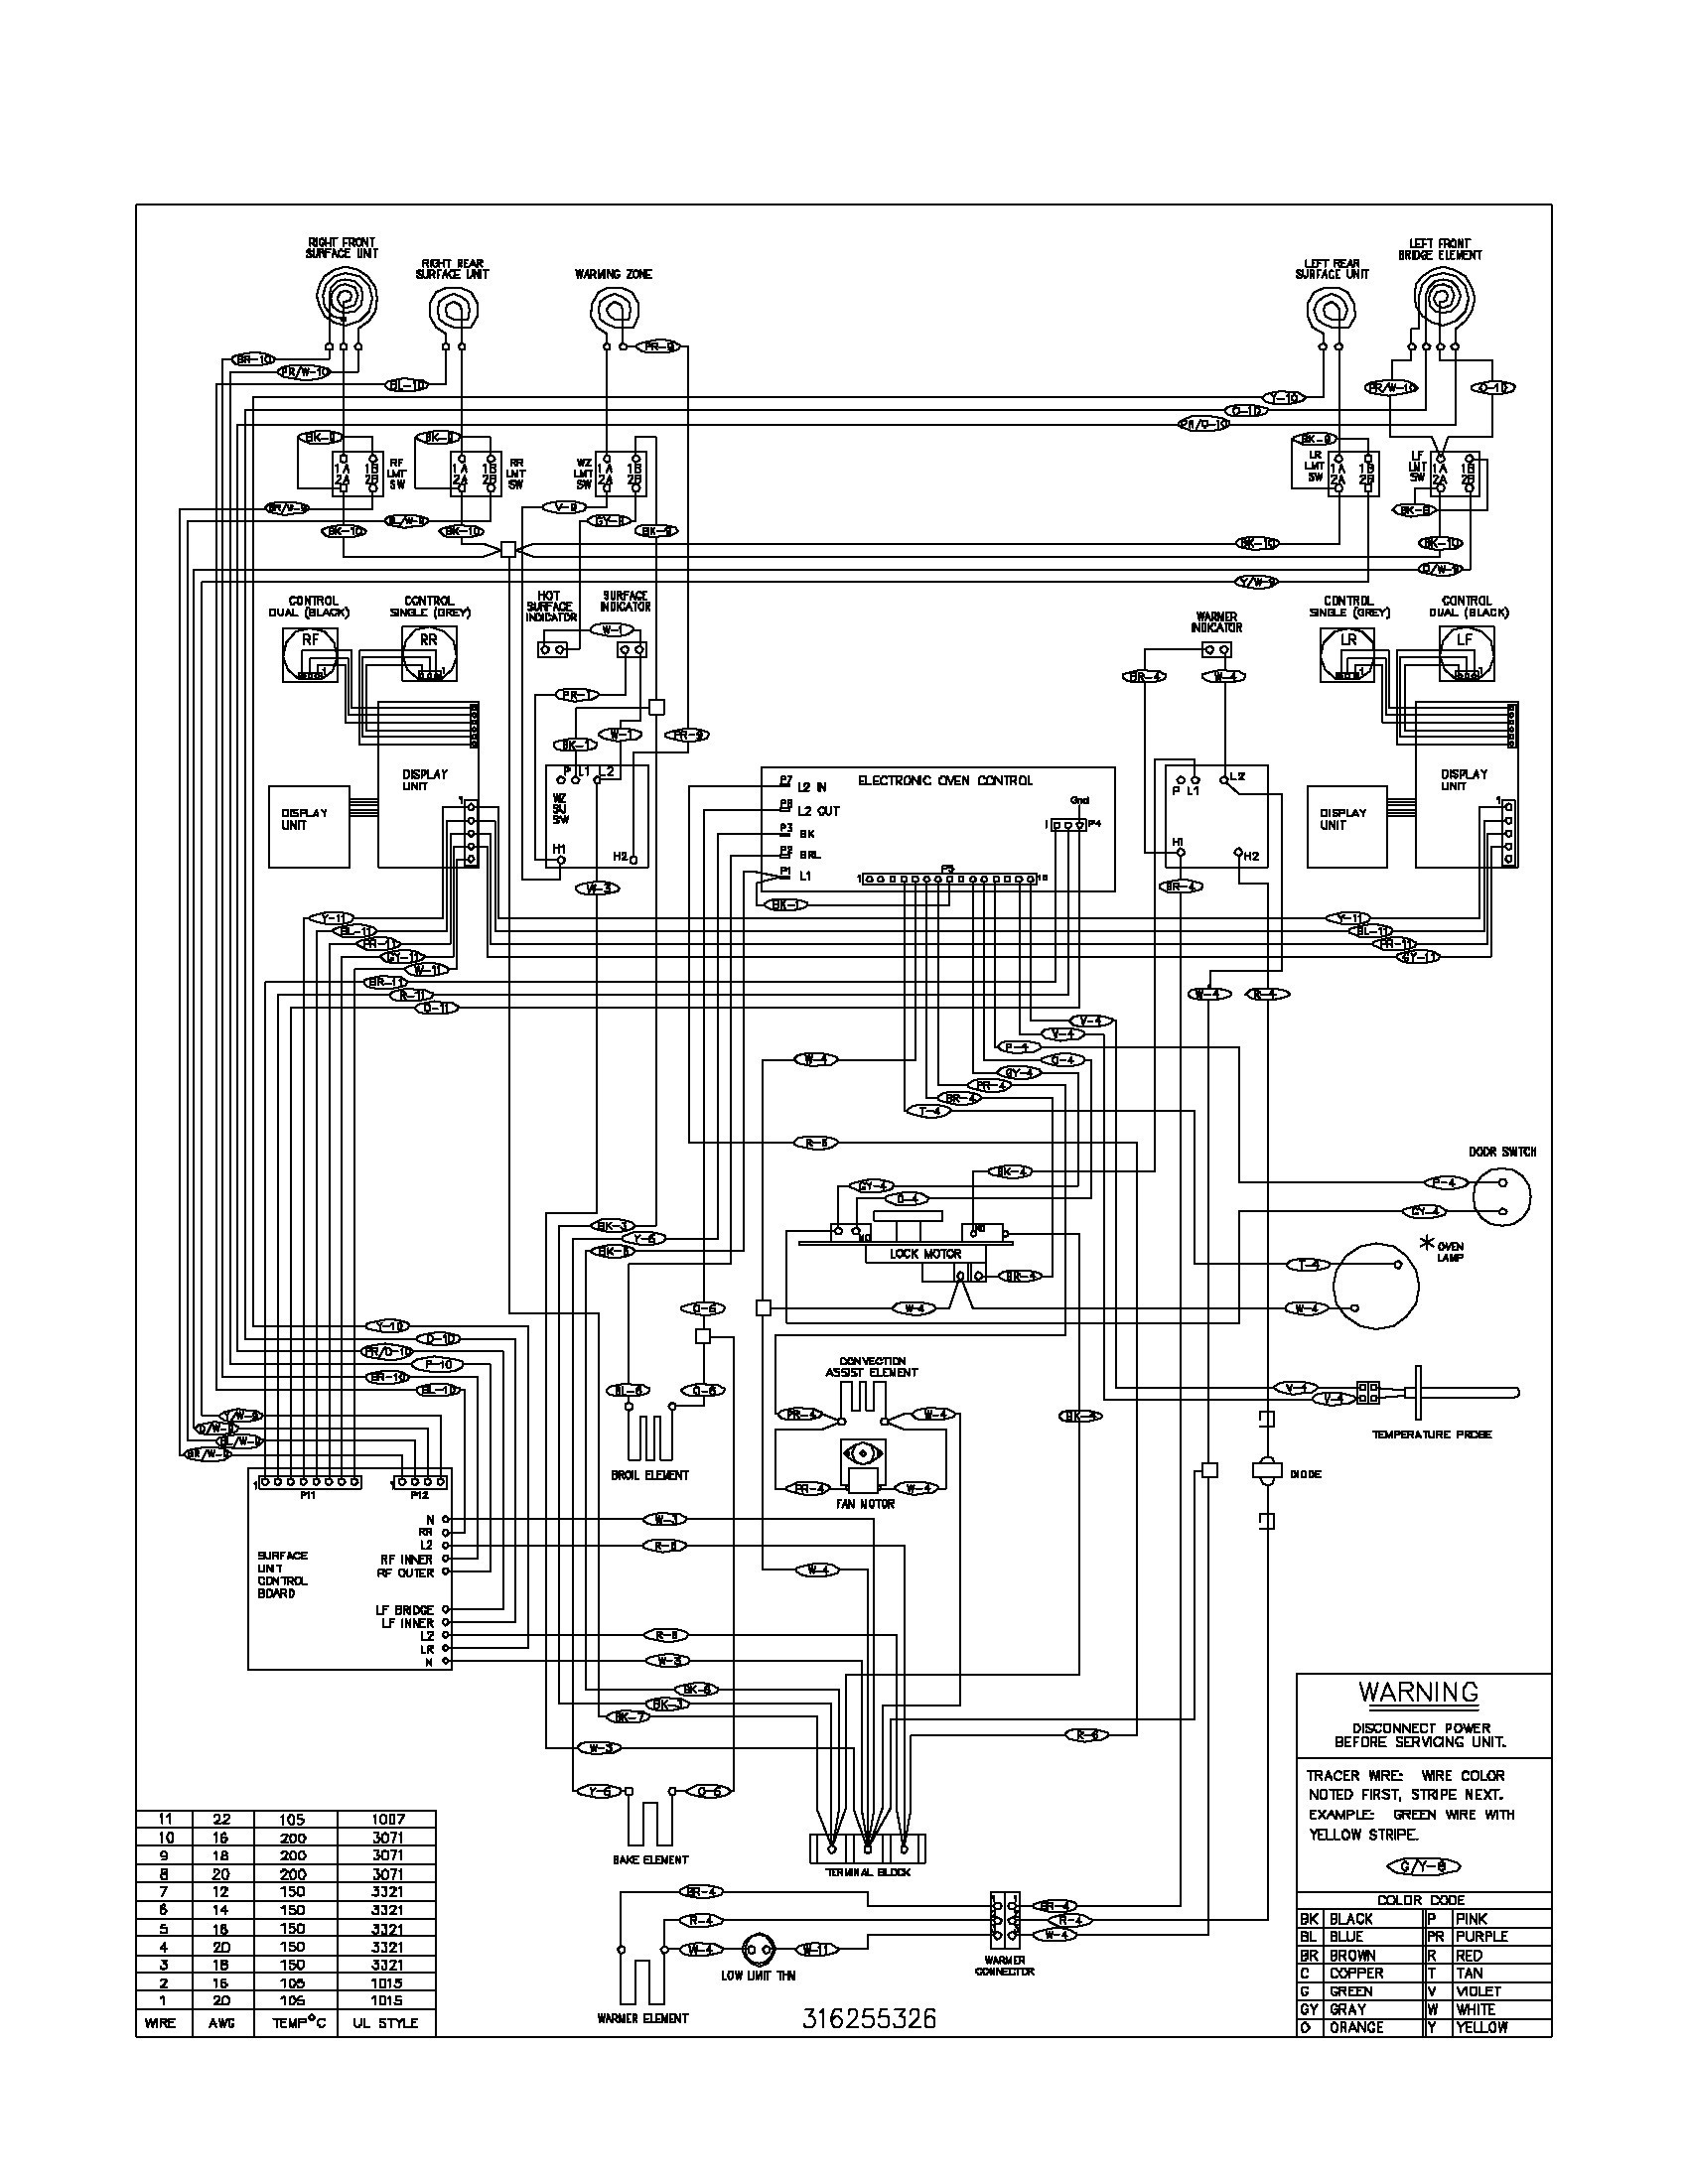 Heat Sequencer Wiring Diagram Electric Heat Furnace Wiring Diagram Inspirationa Heat Sequencer Of Heat Sequencer Wiring Diagram